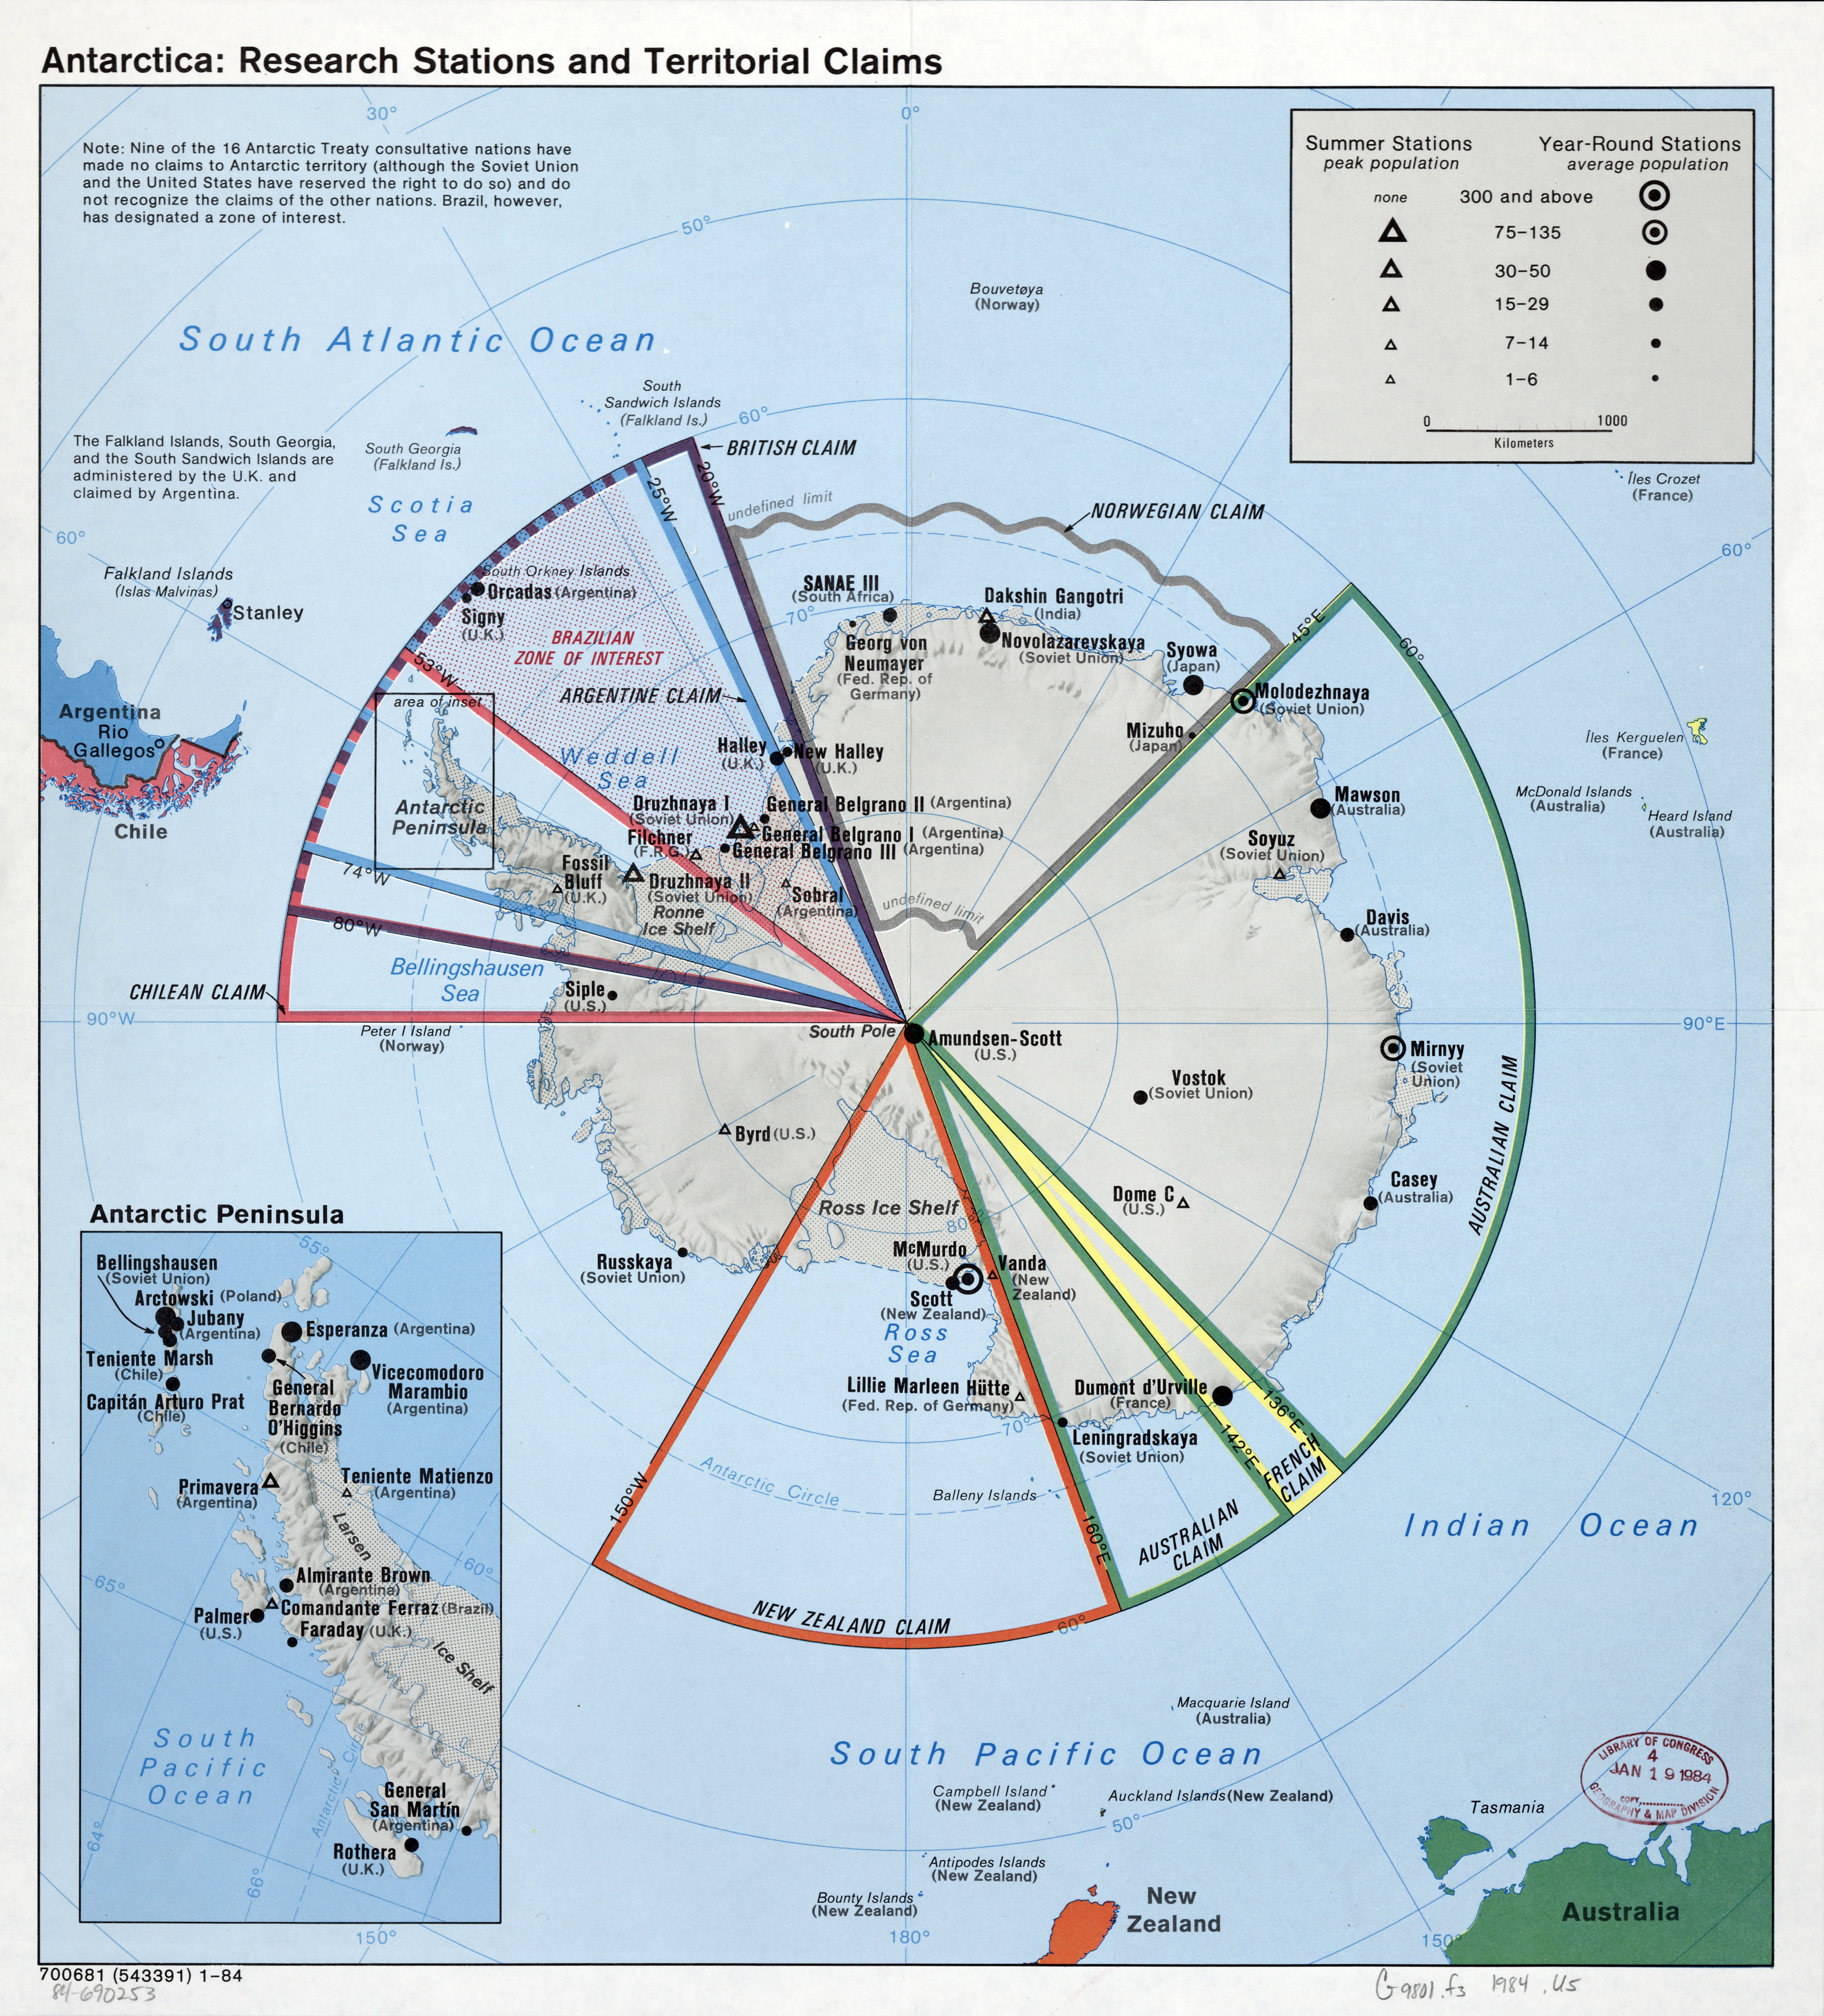 Large scale map of the Antarctica research stations and territorial